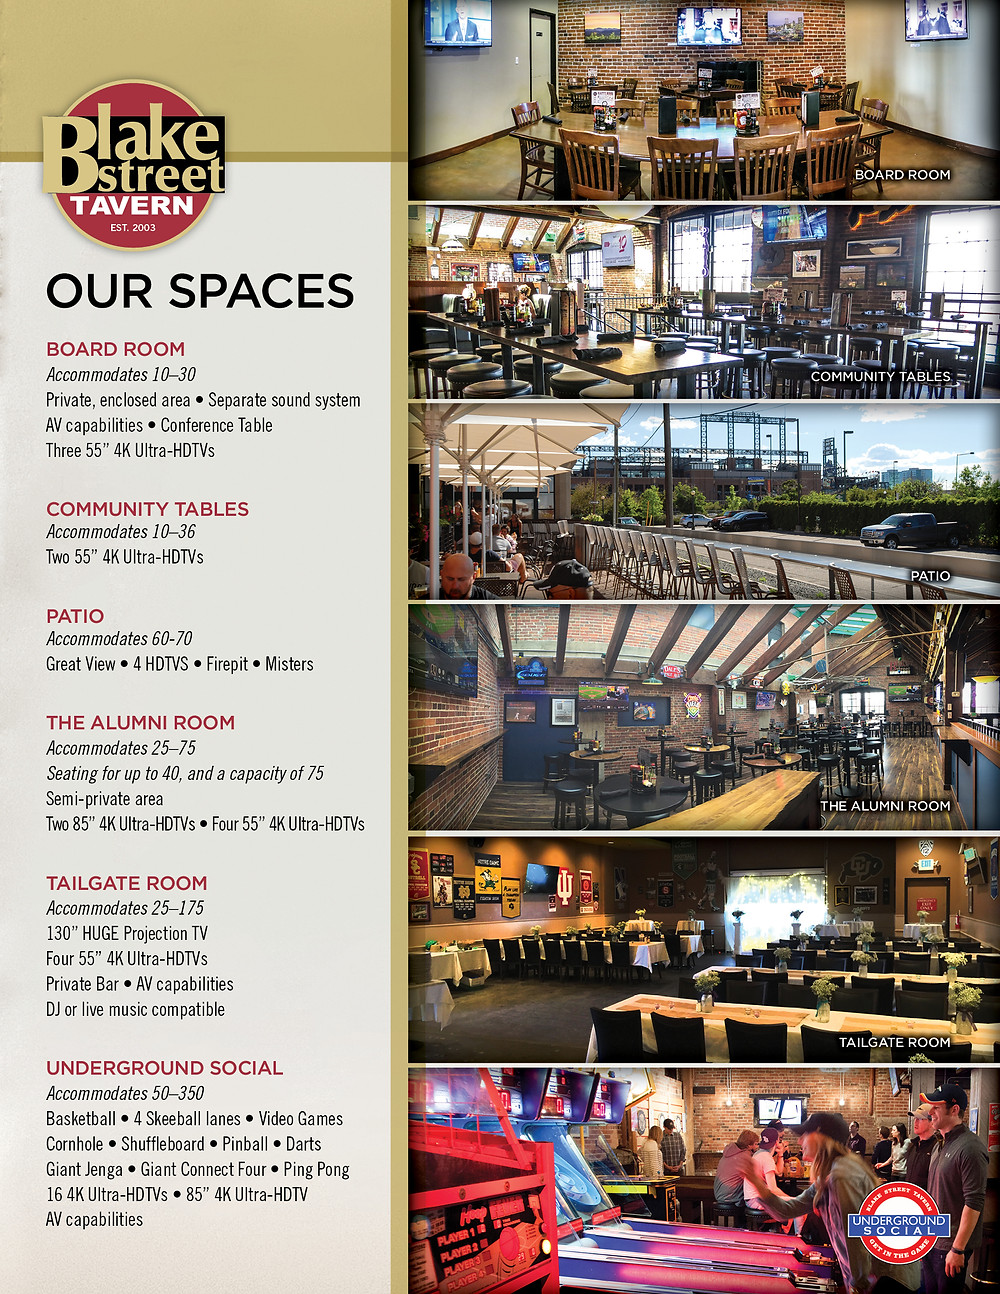 Free Meeting Space for Nonprofits in Denver - Blake Street Tavern has great Event Venue Spaces for your Non Profit